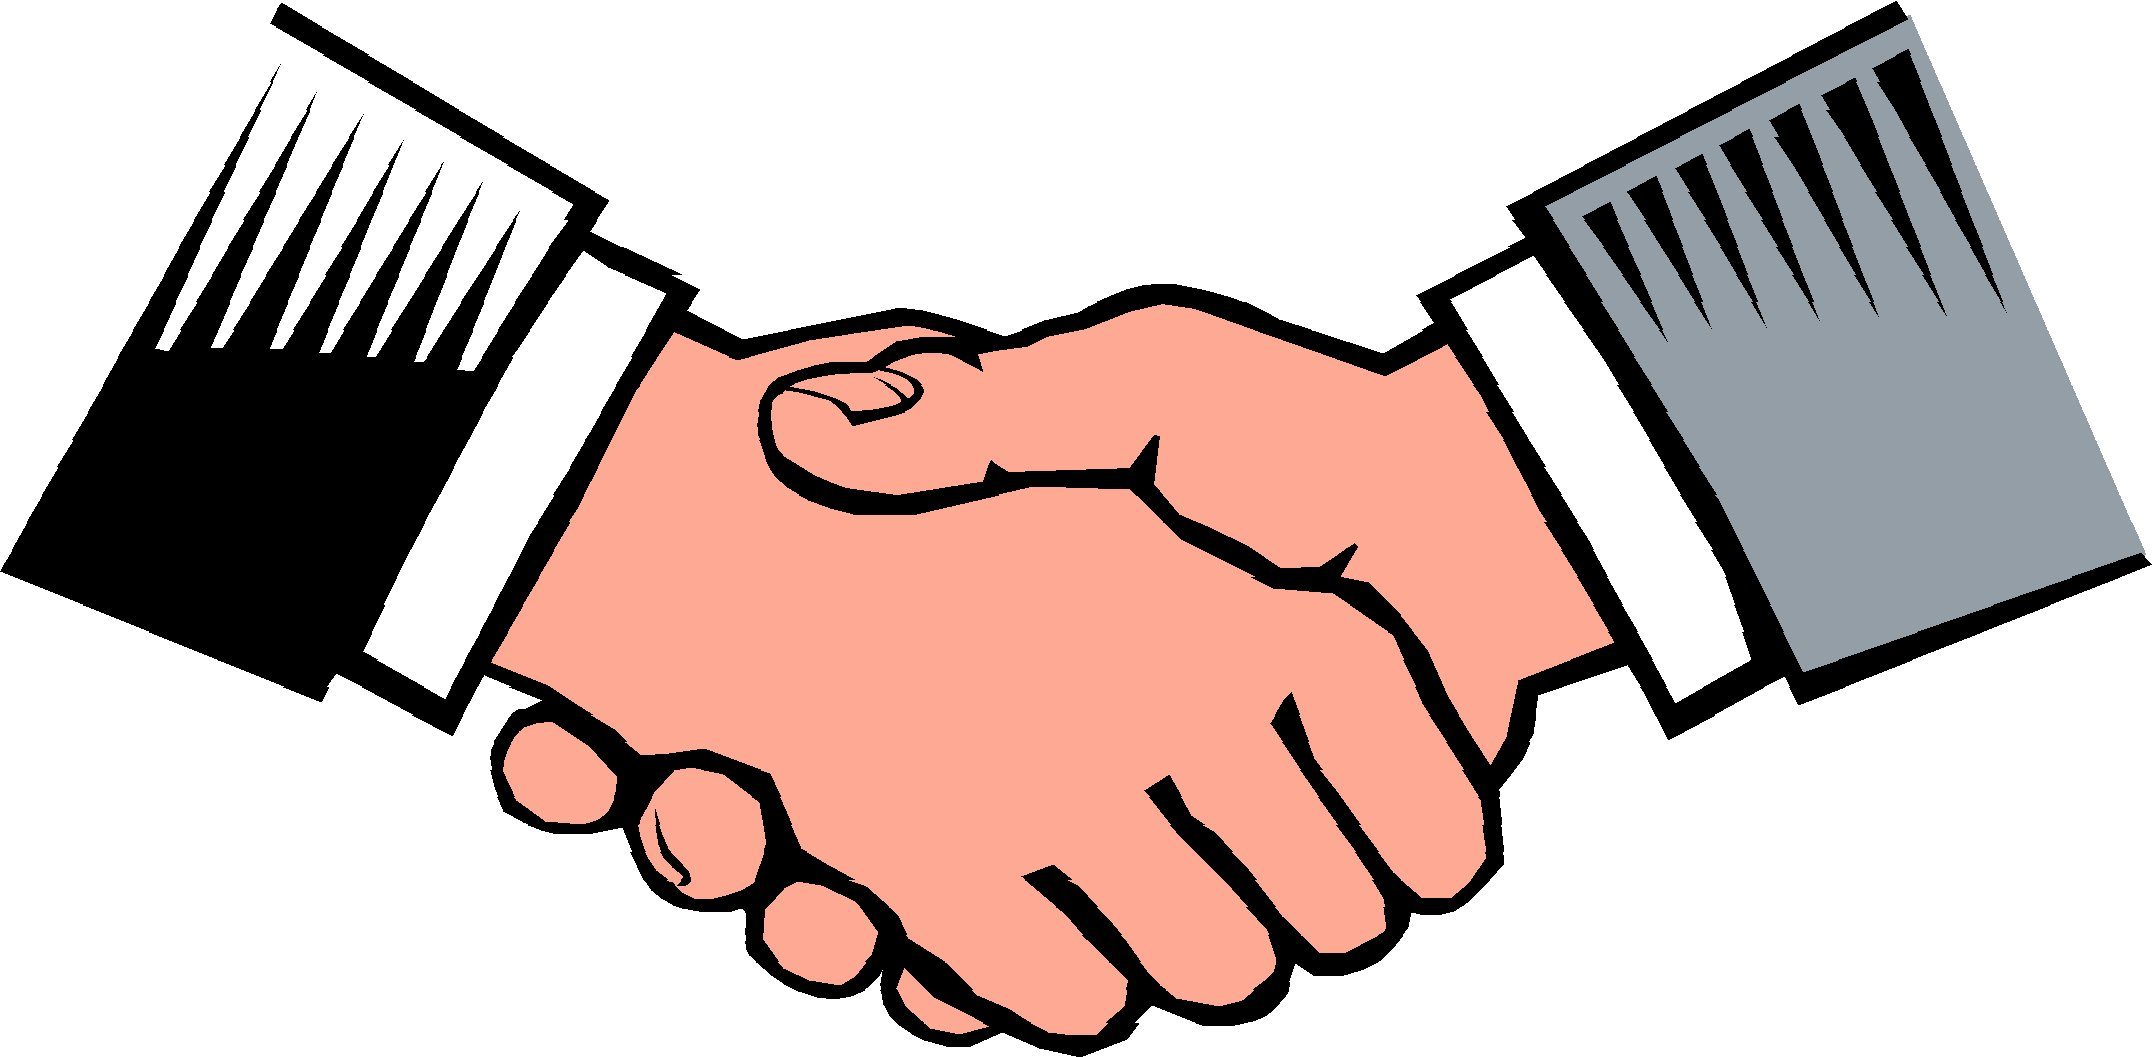 Shaking Hands Clipart.